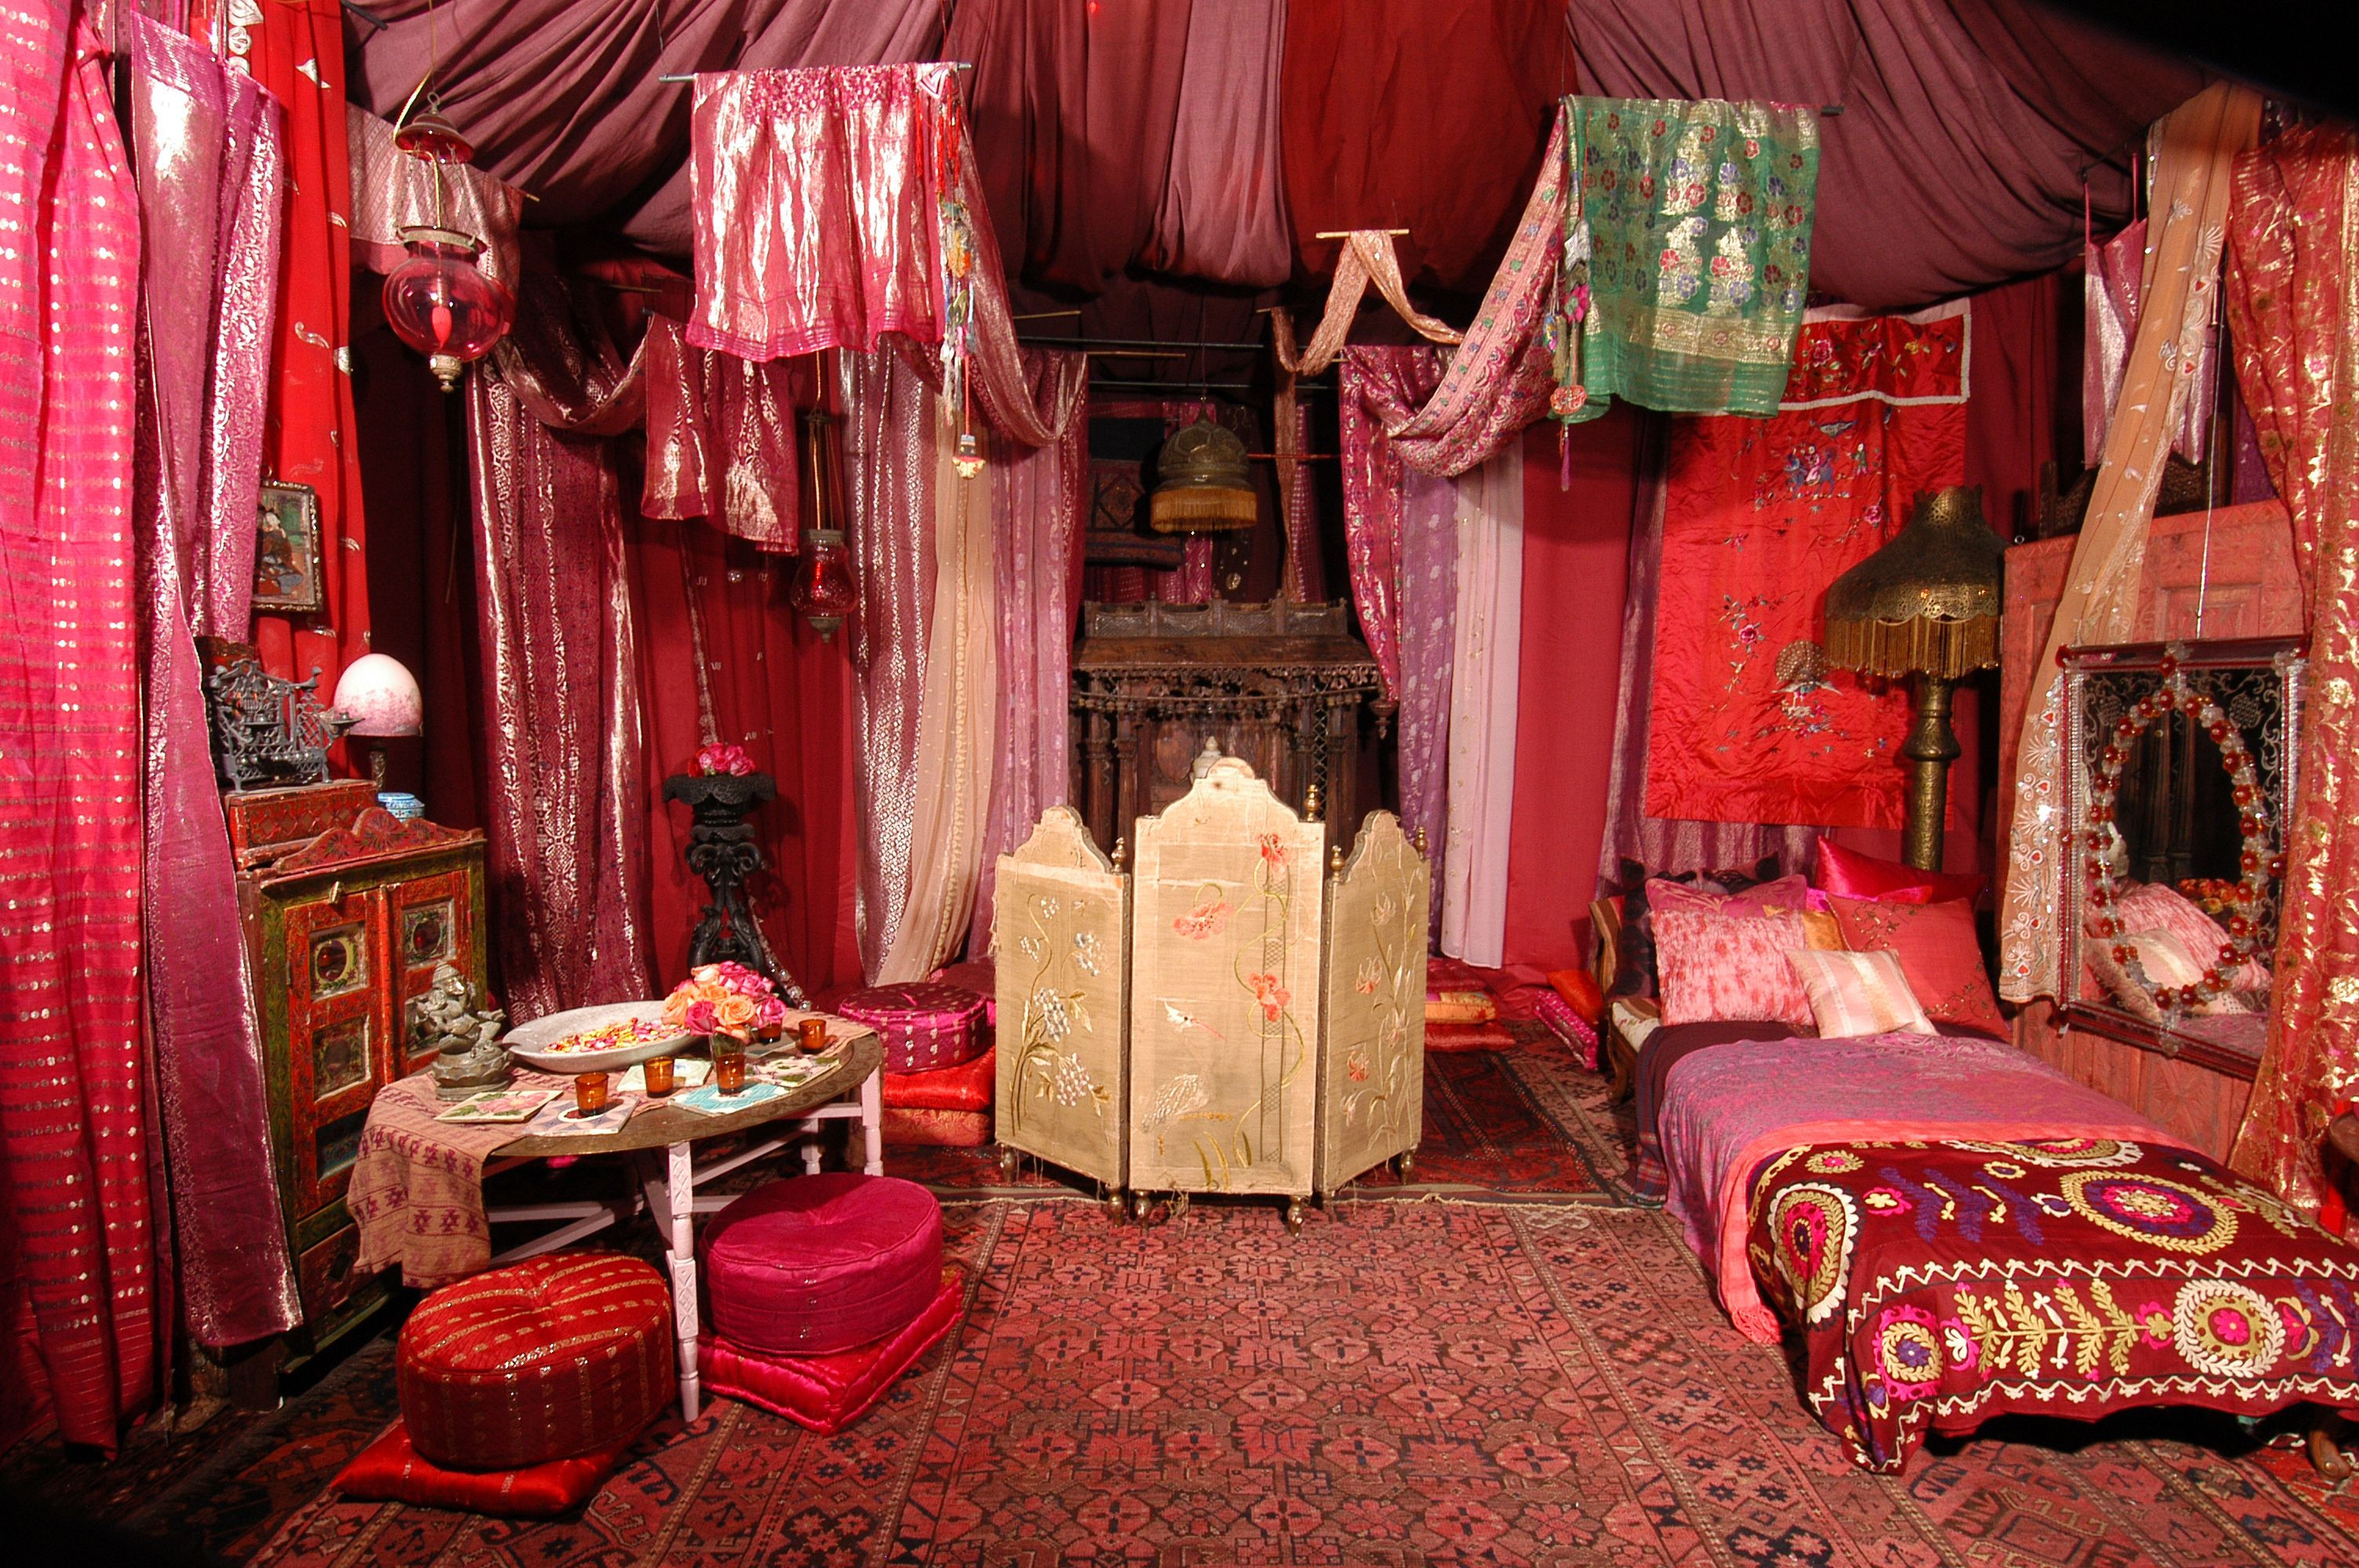 More Red Tent Style Decor  Ladies Weekend Away